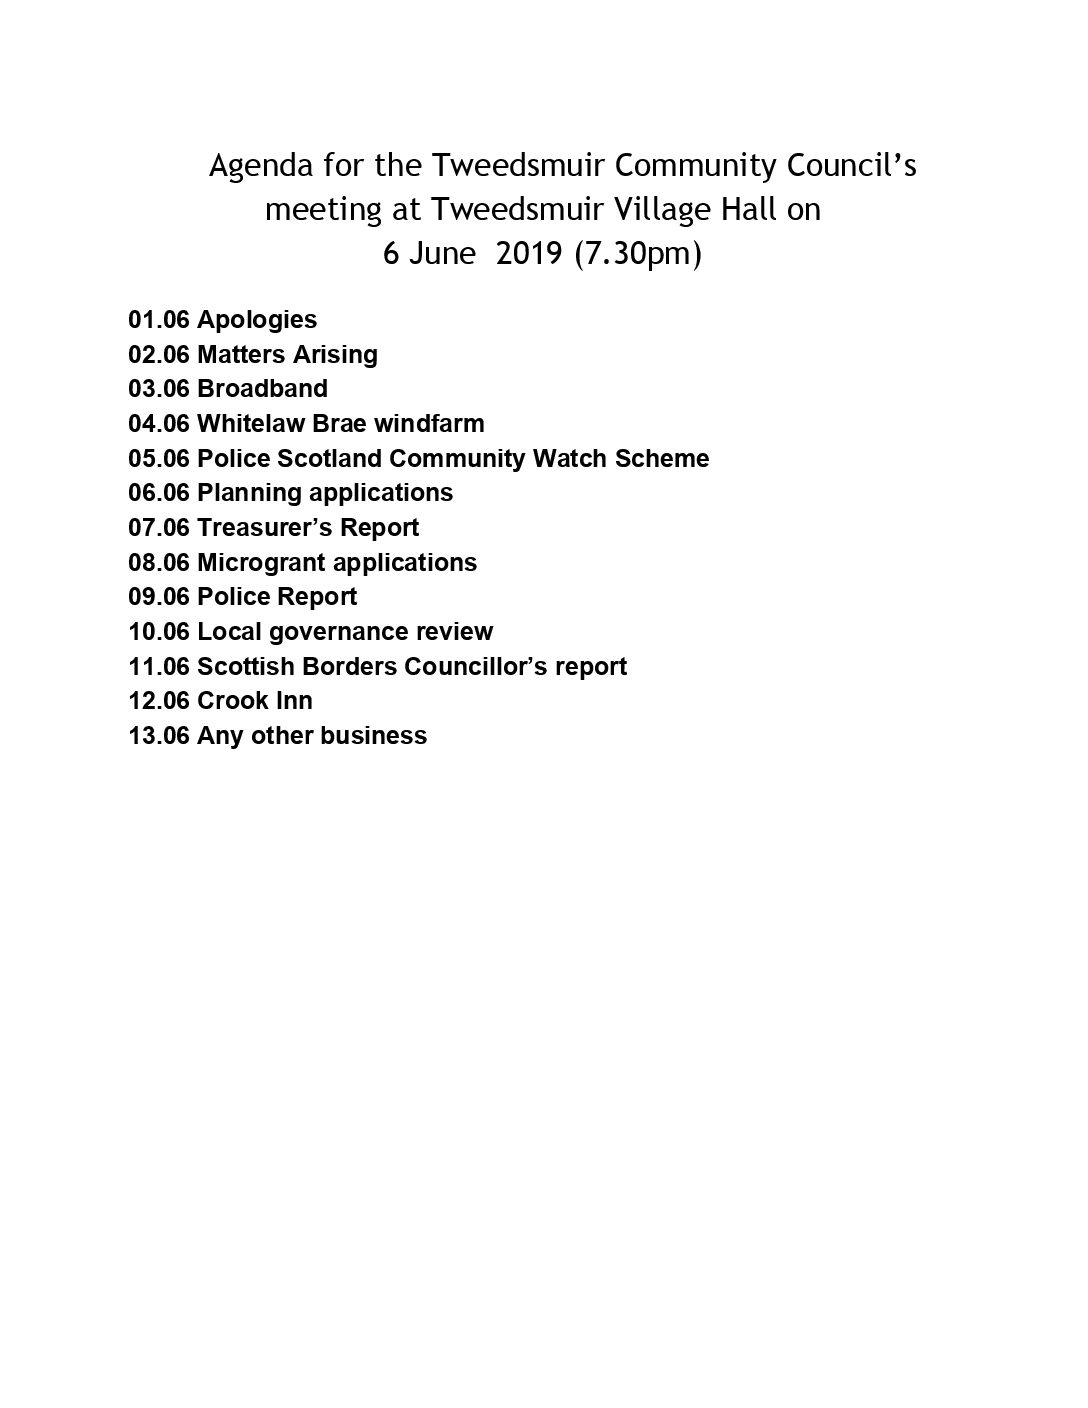 Tweedsmuir Community Council